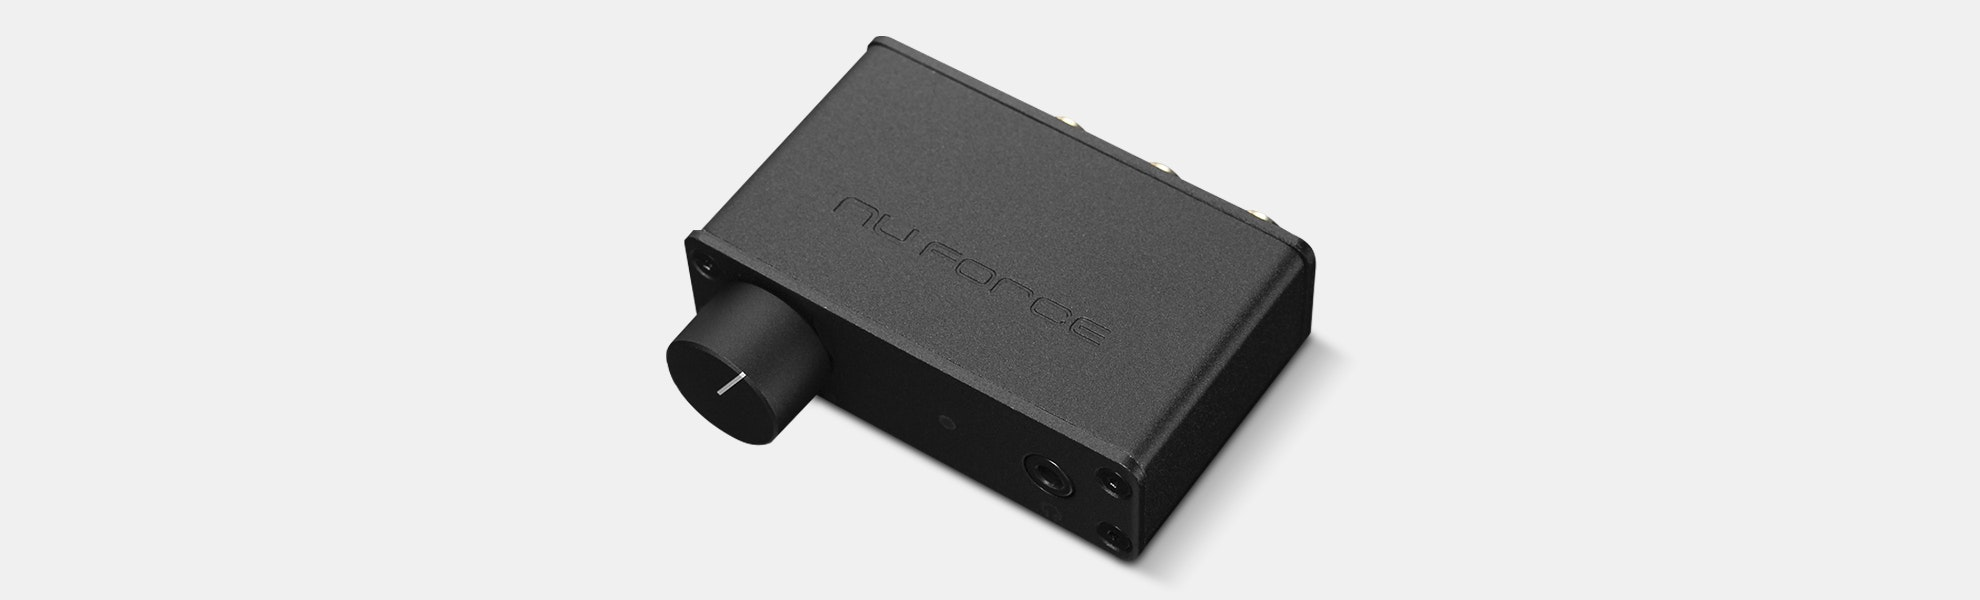 NuForce uDAC-3 DAC/Amp Combo – Flash Sale